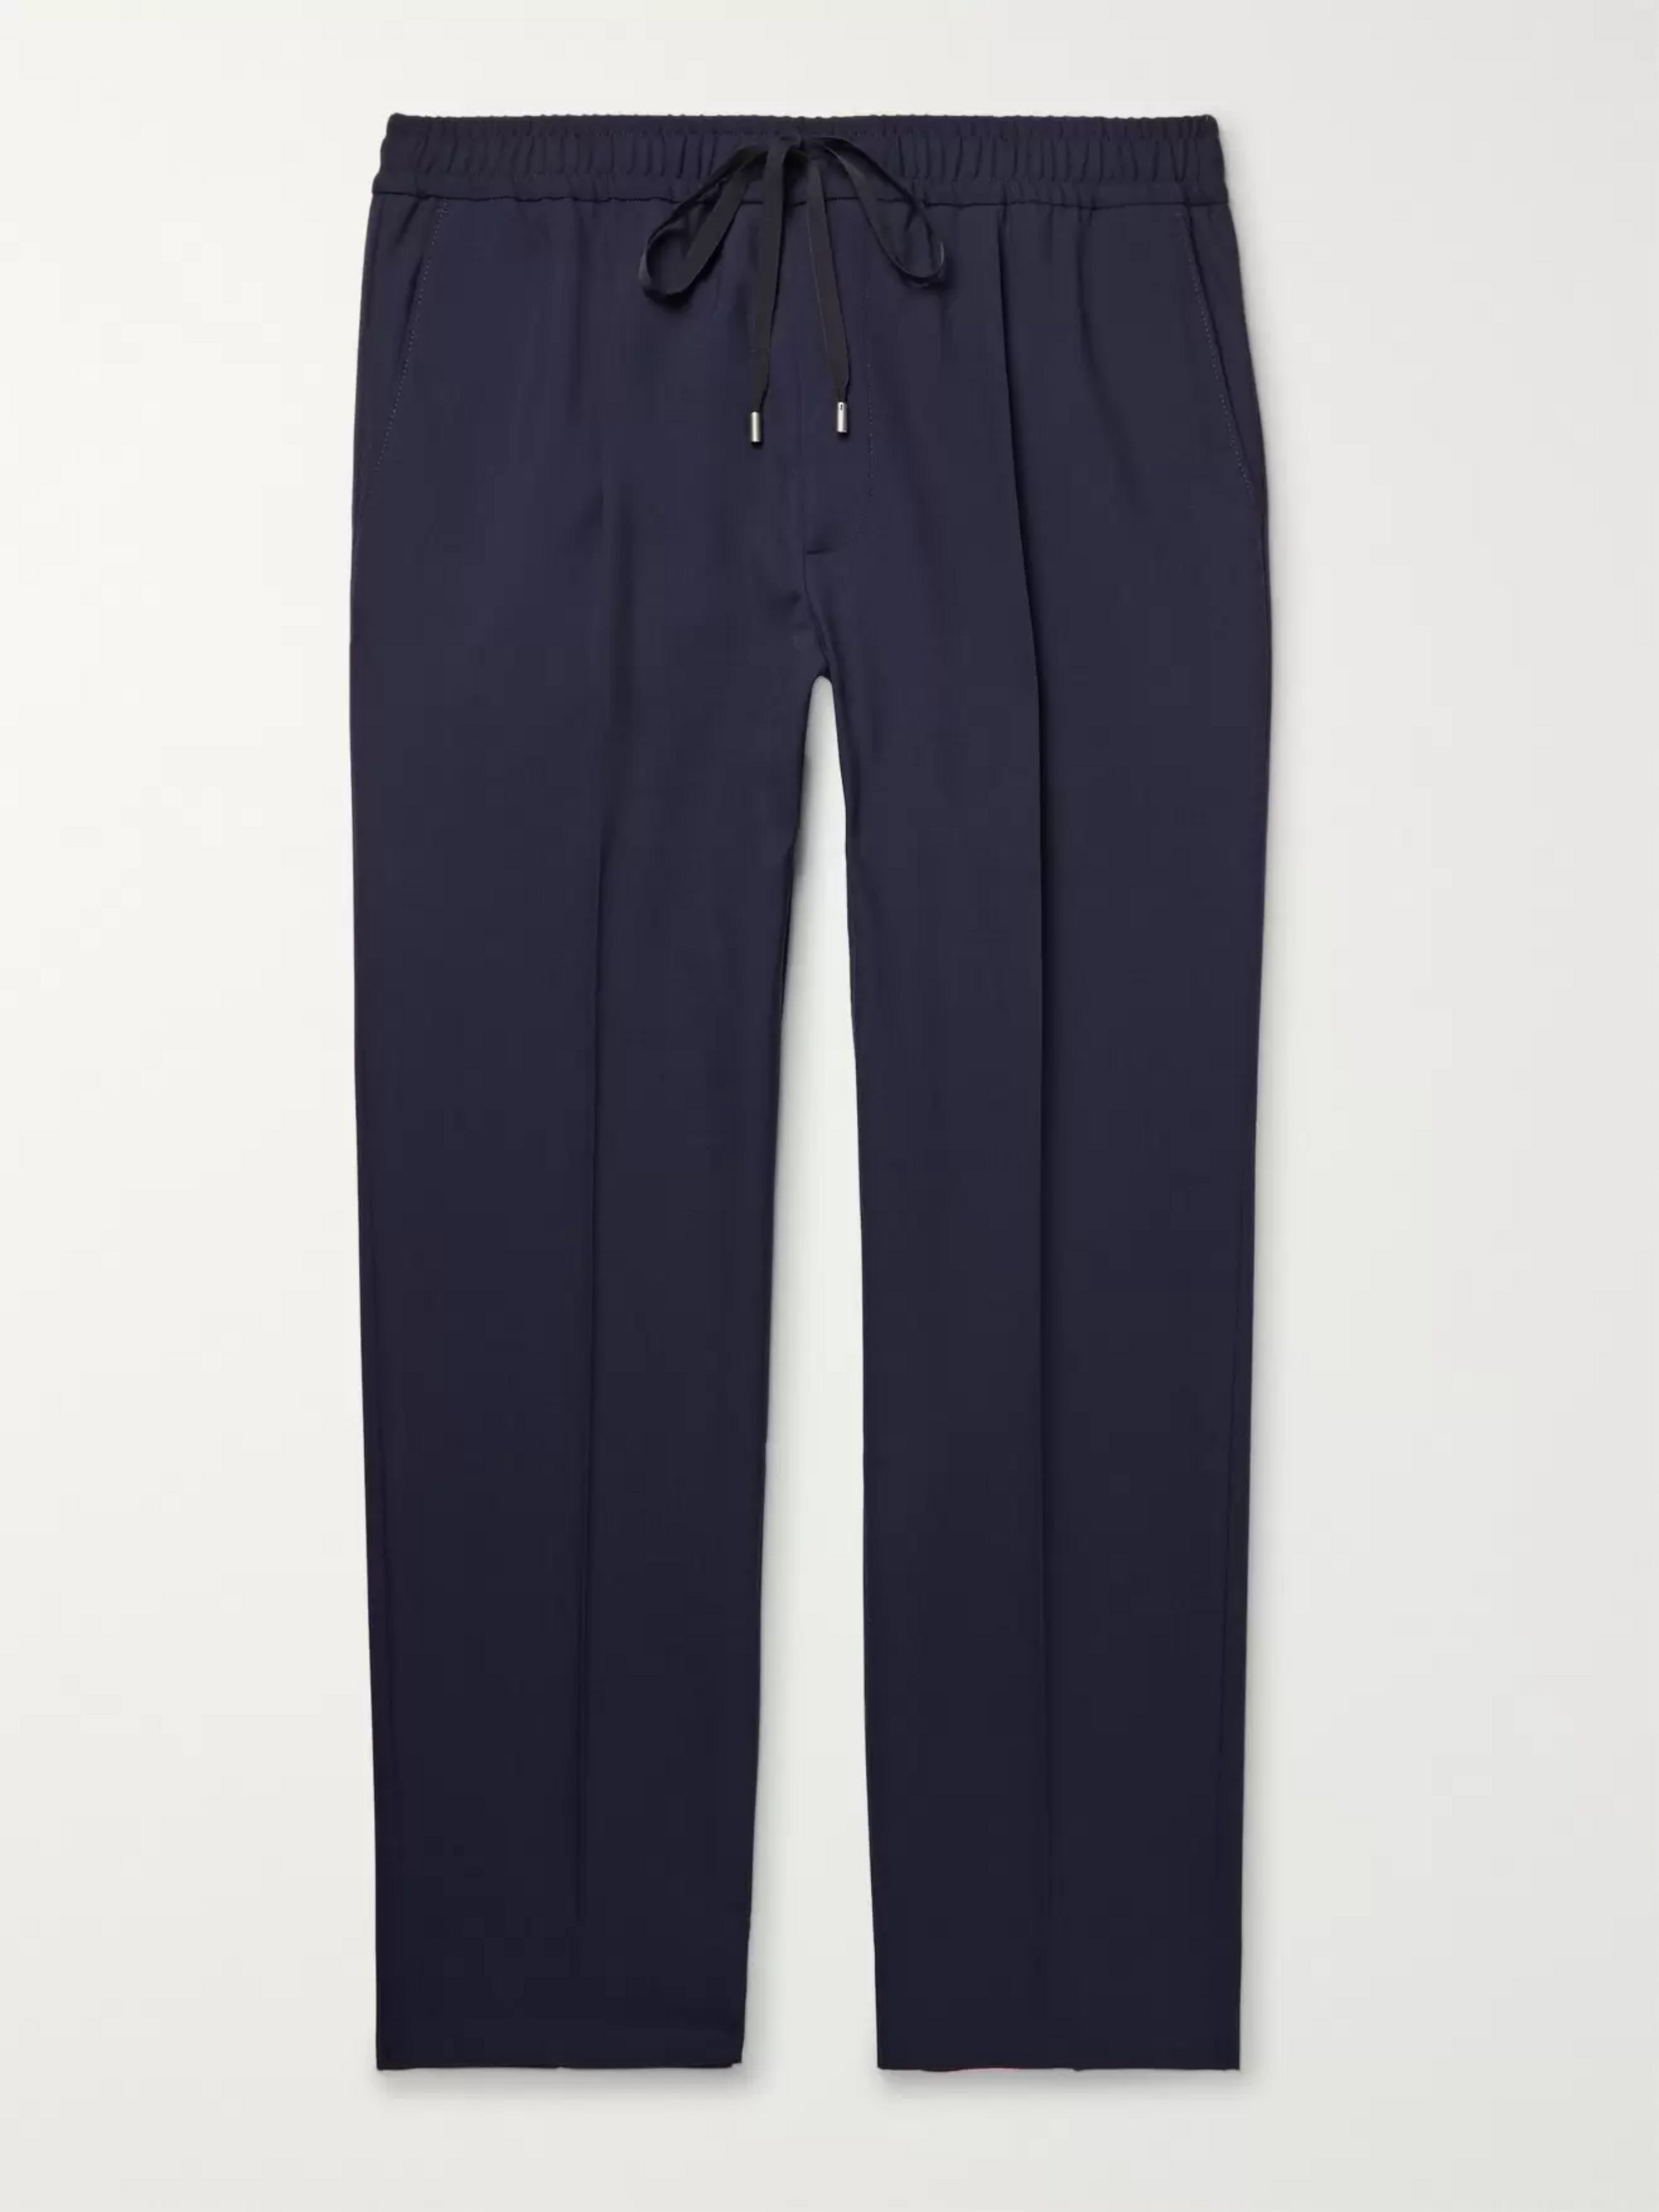 Gucci Charcoal Cropped Wool Drawstring Trousers